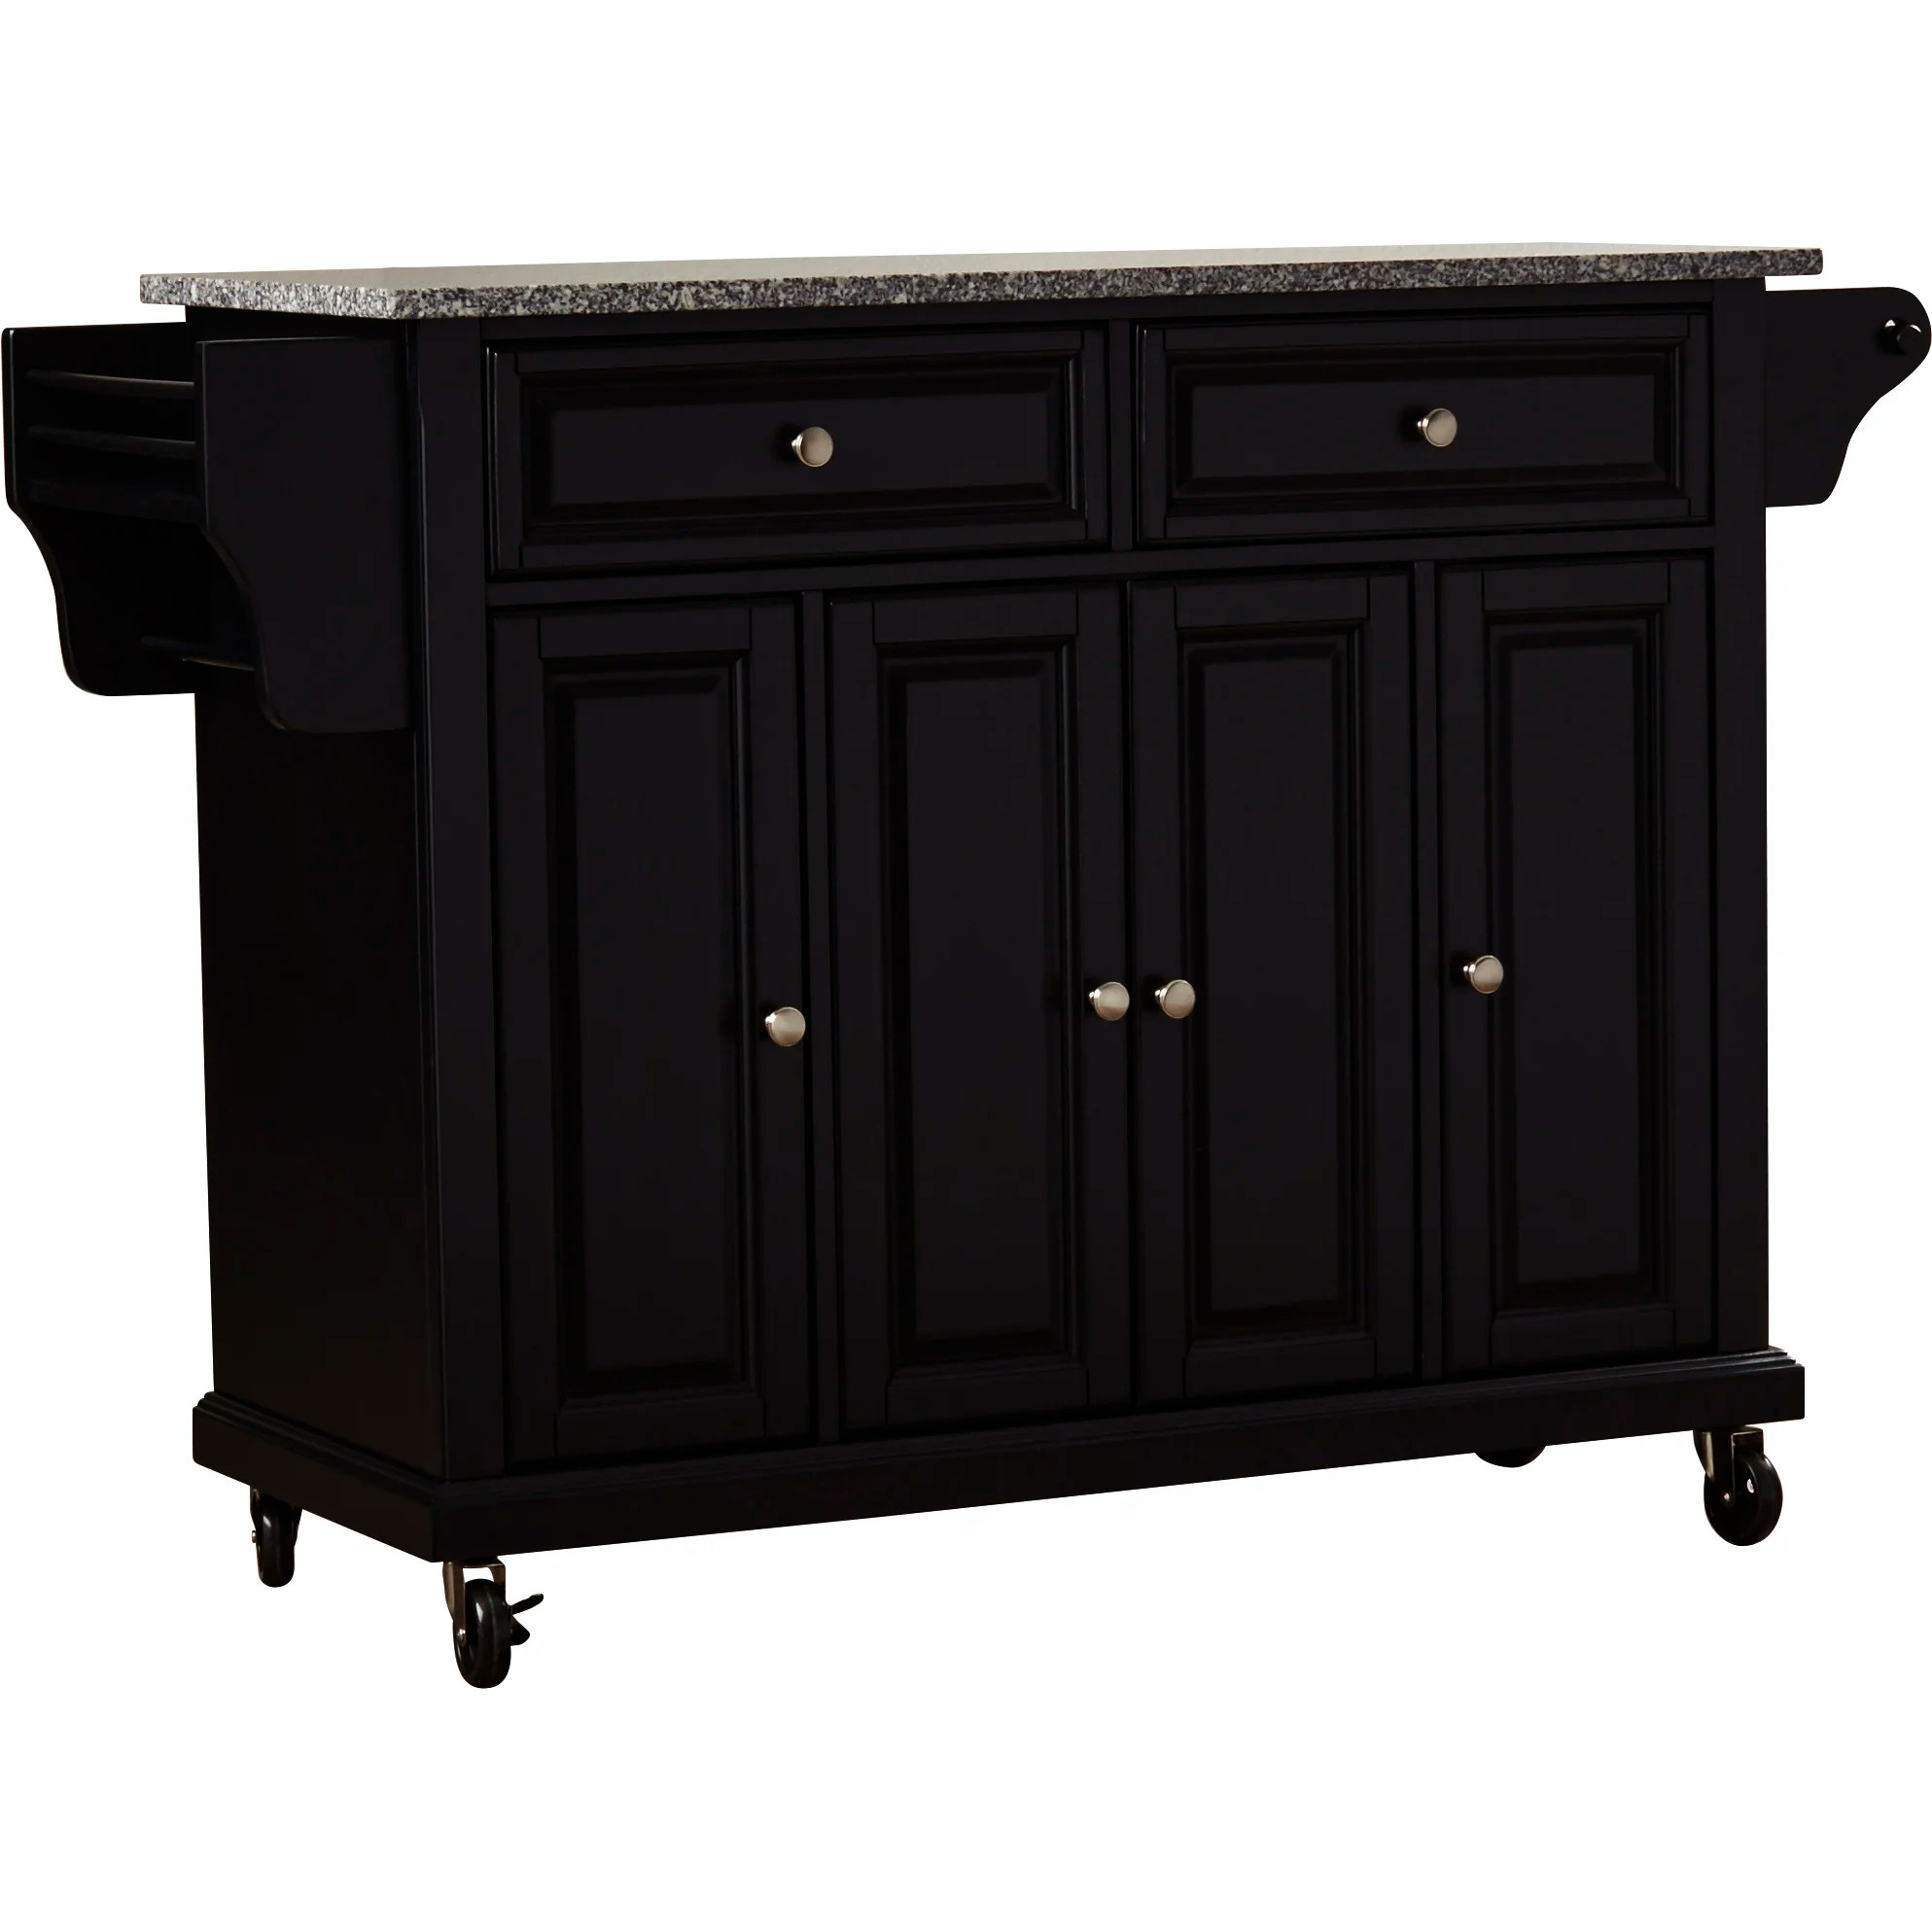 marble top kitchen cart small remodel ideas on a budget darby home co pottstown island with granite